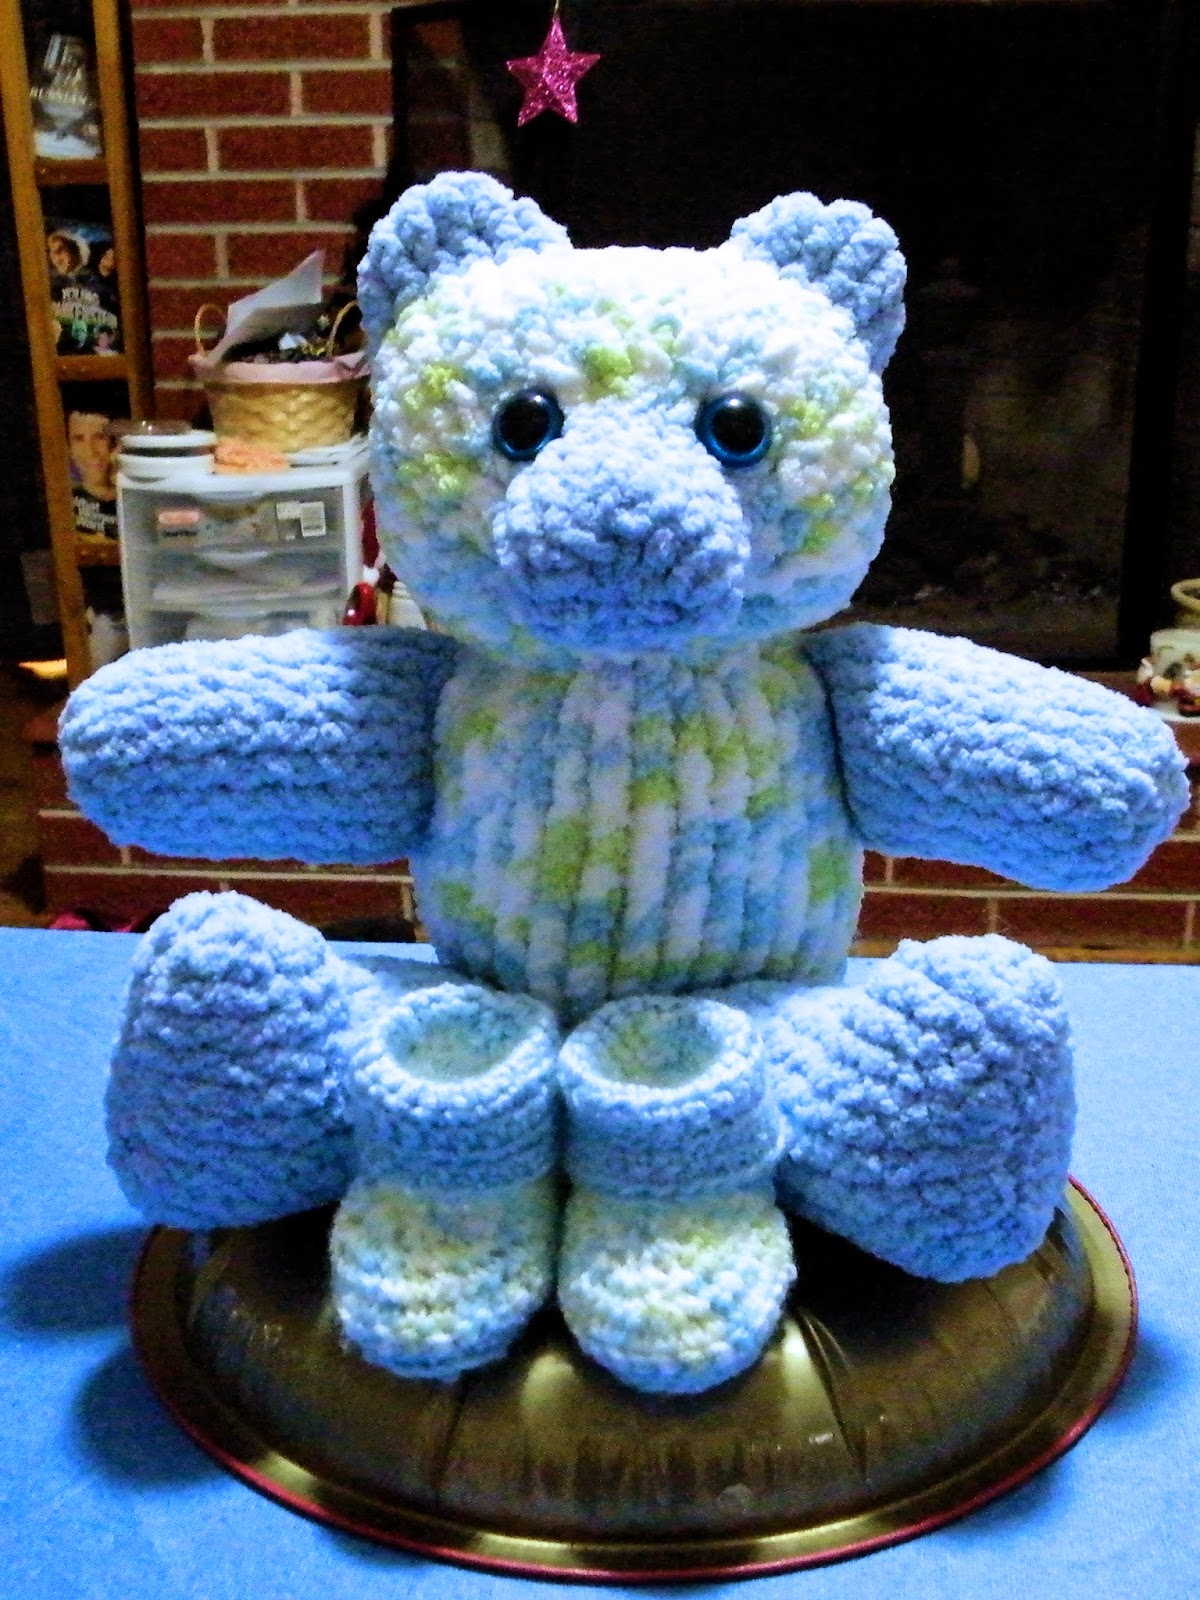 The Loom Muse : How to Loom Knit a Large Teddy Bear